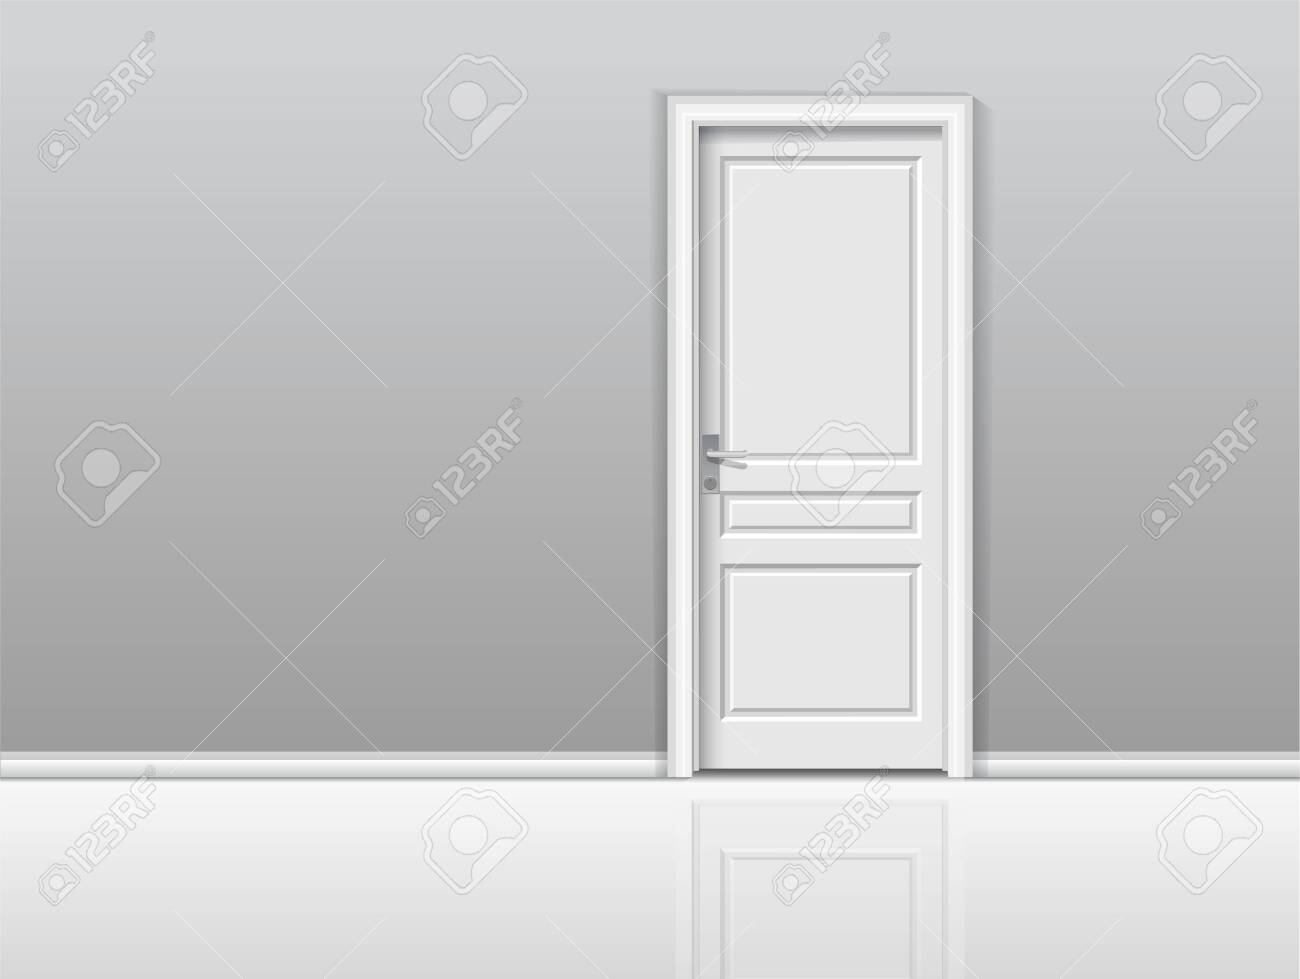 Closed white door in a white room. Chromatic image. Vector background - 136137488